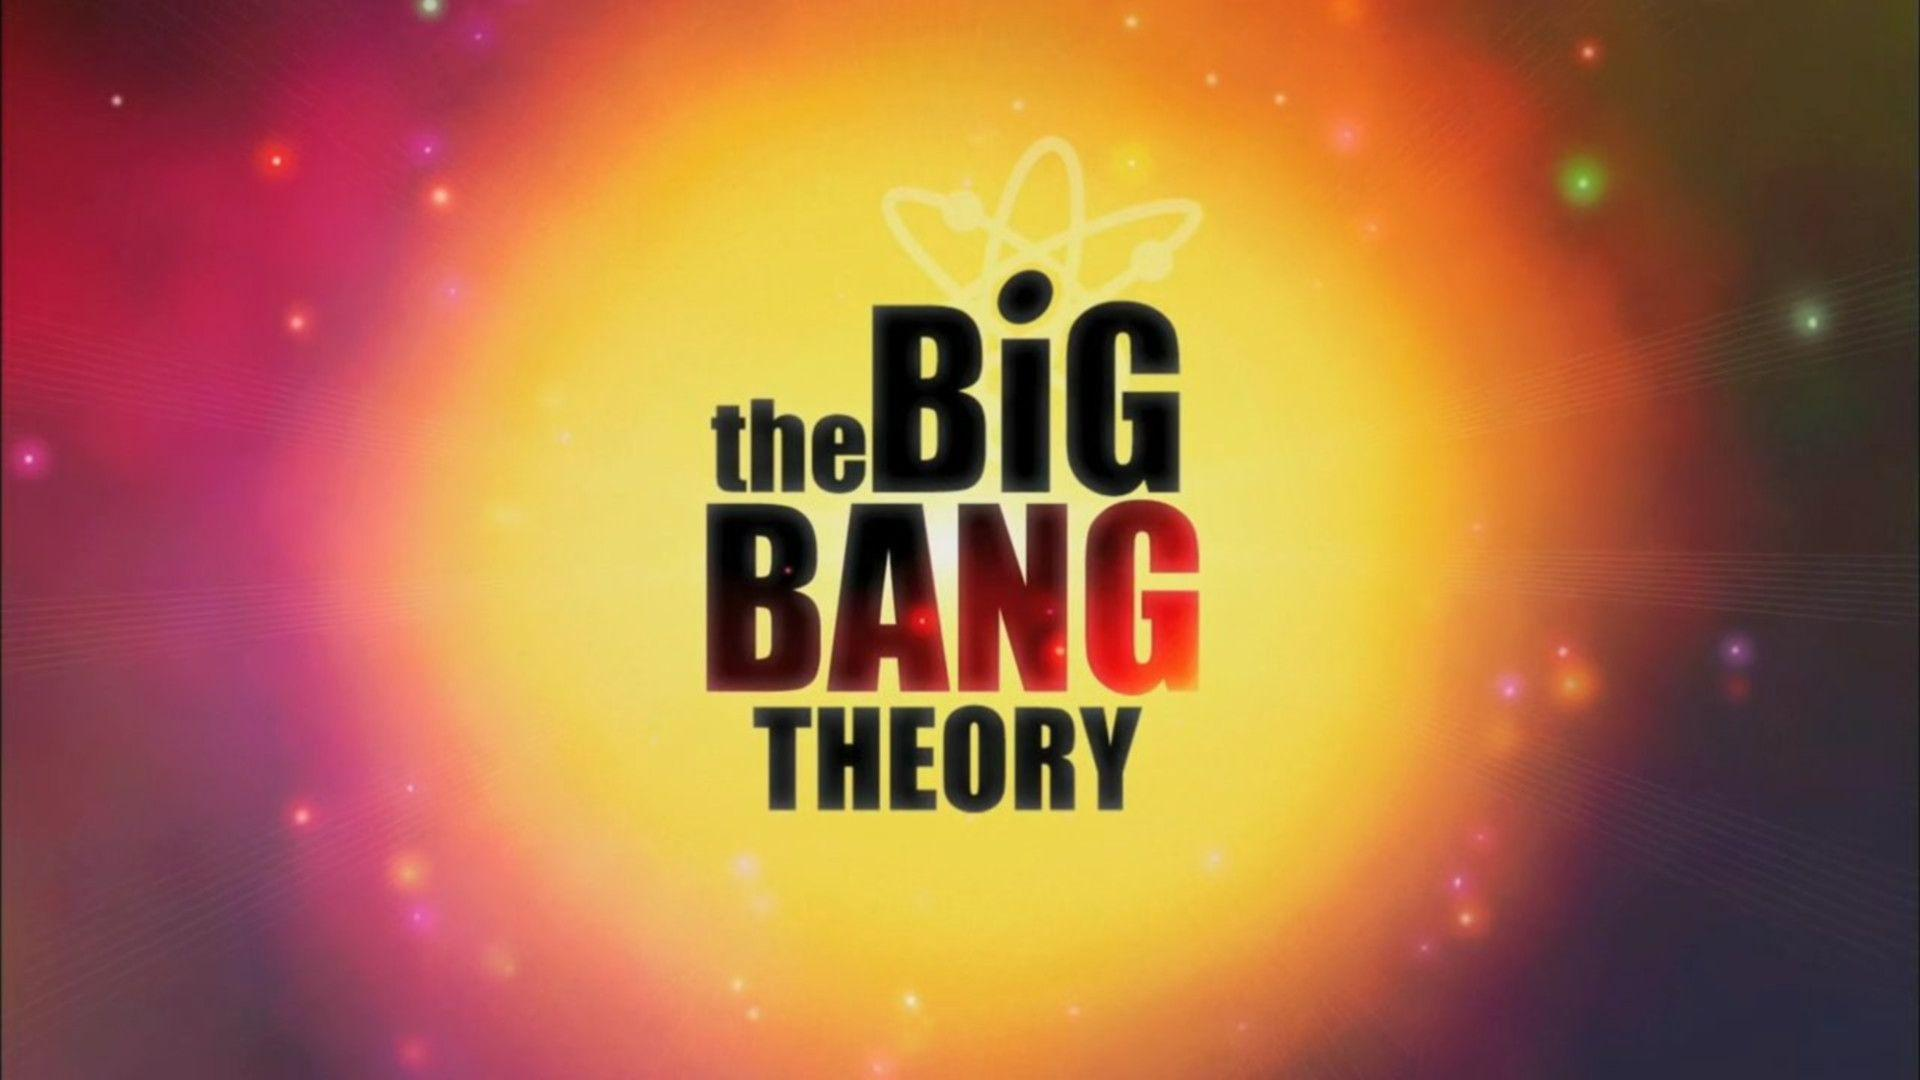 Fonds d'écran The Big Bang Theory : tous les wallpapers The Big ...